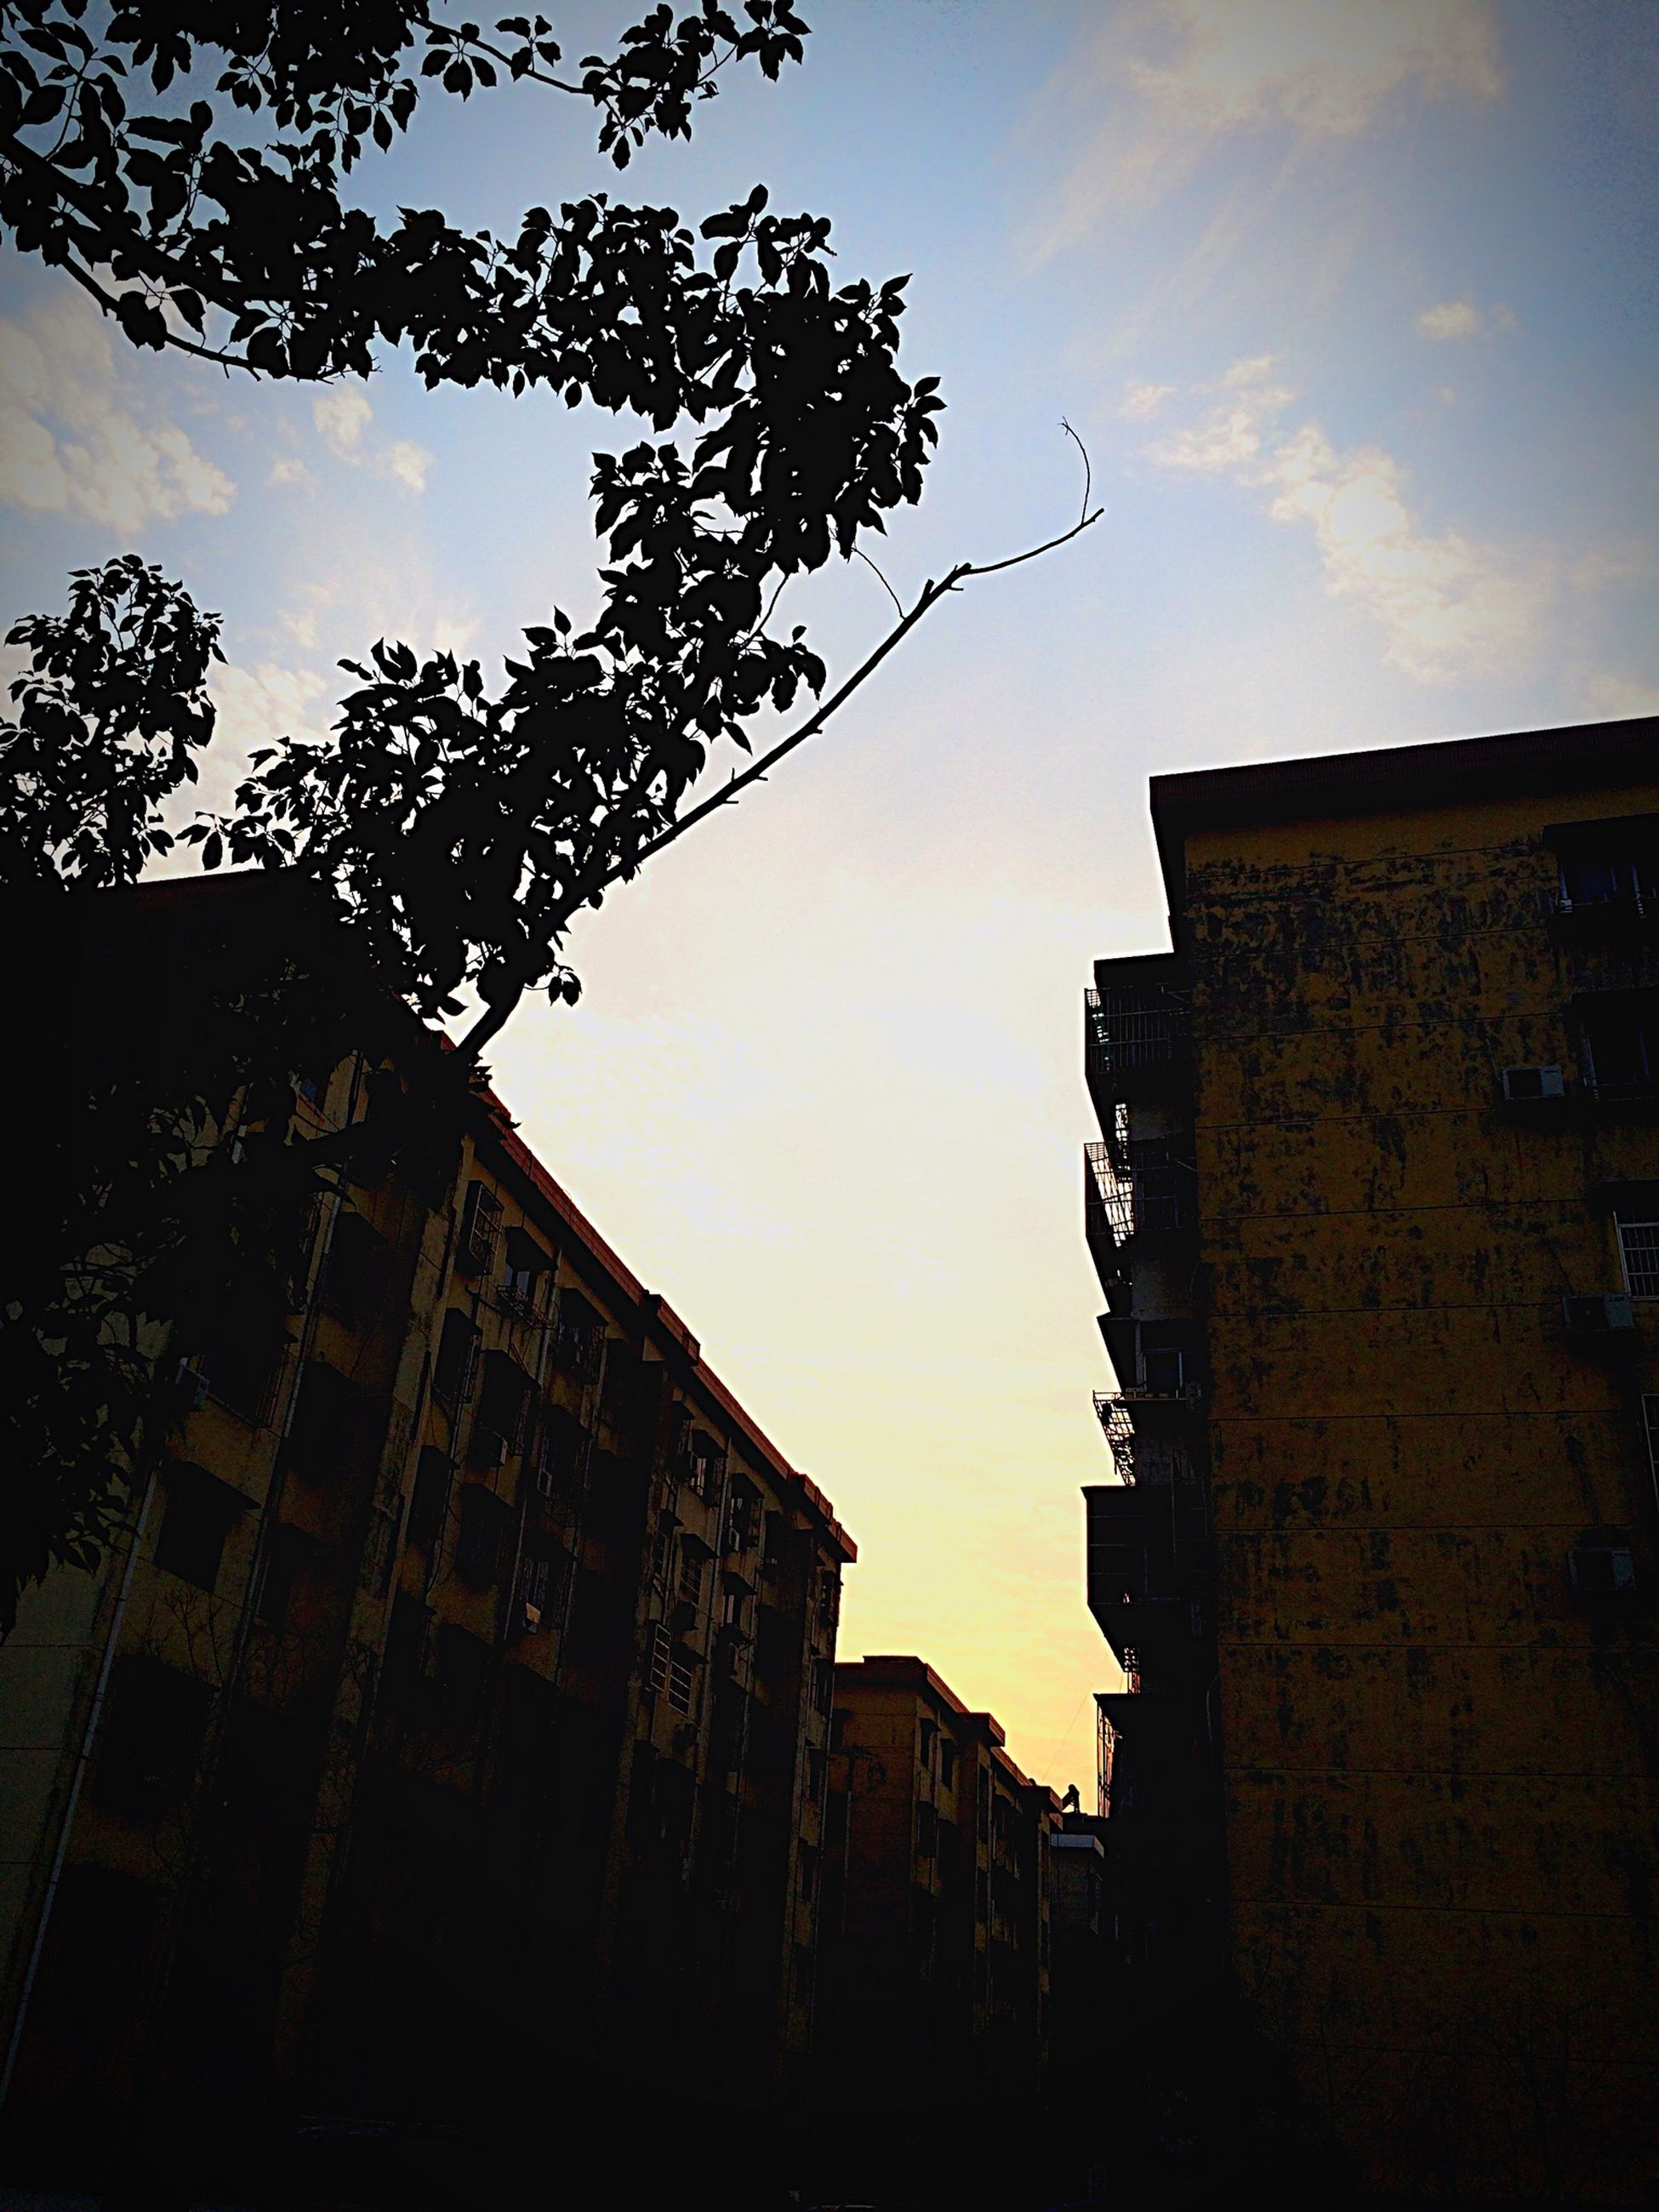 architecture, built structure, low angle view, building exterior, sky, silhouette, tree, sunset, building, branch, cloud - sky, house, dusk, residential building, outdoors, no people, residential structure, cloud, bare tree, nature